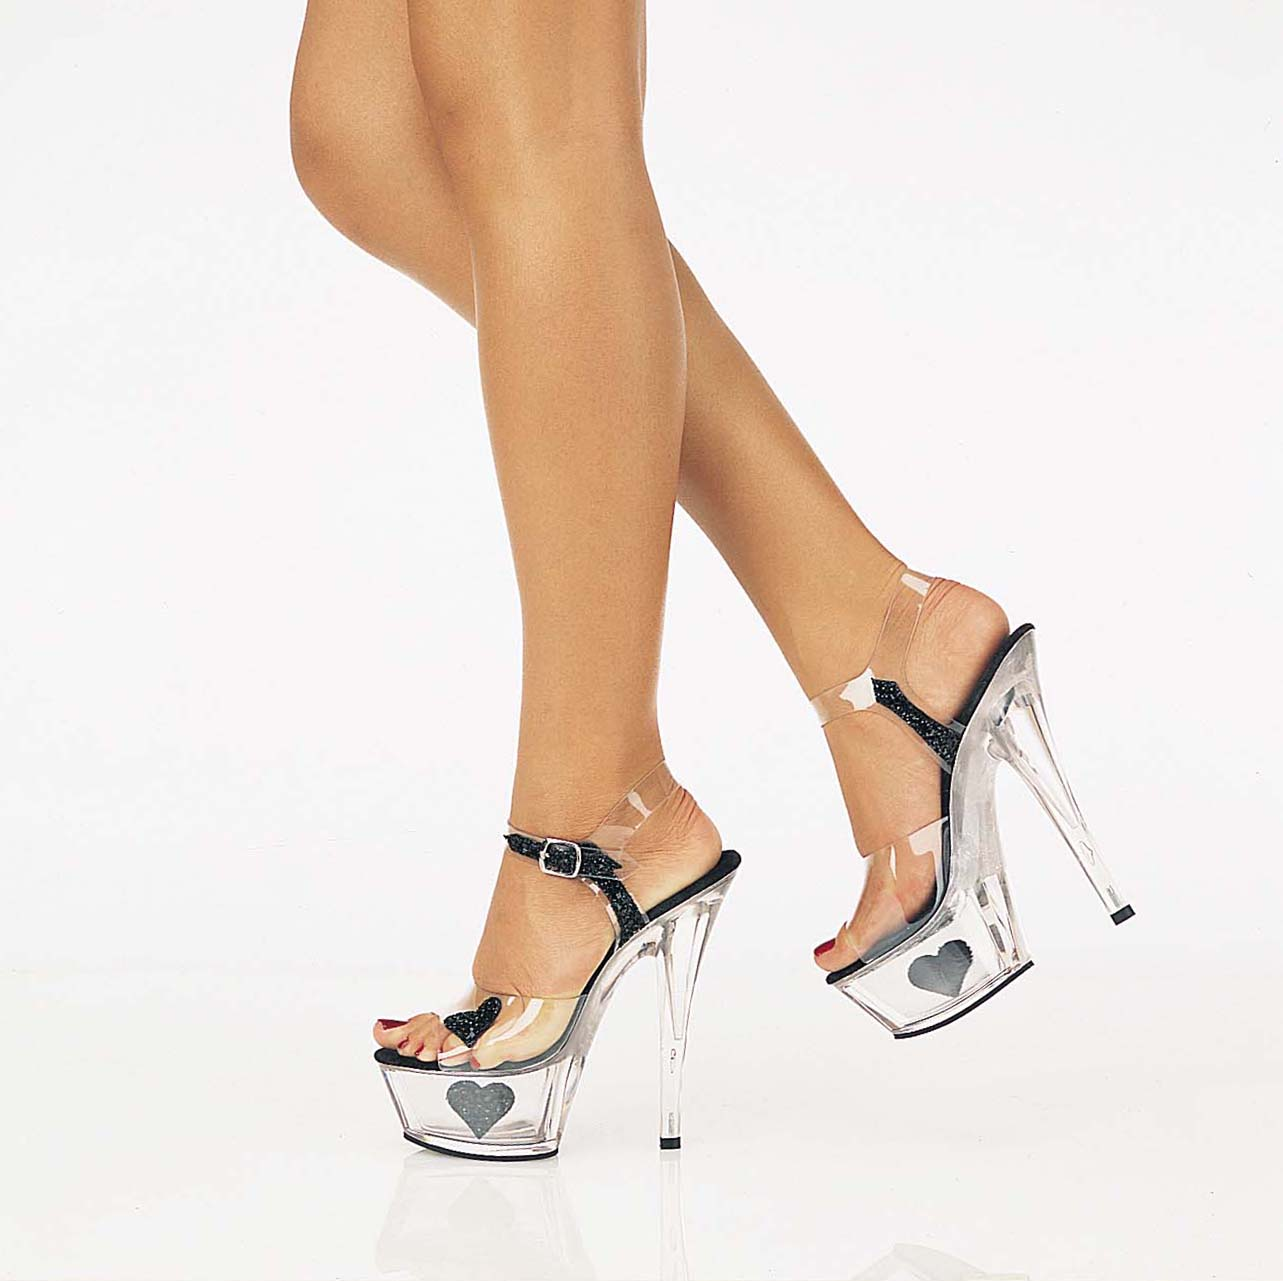 http://4.bp.blogspot.com/-yaaTGri0pyA/UEzG8HcqoMI/AAAAAAAAAKI/5_LStwBMk88/s1600/High-Heels-Fashion-for-Women-2012-05.jpeg